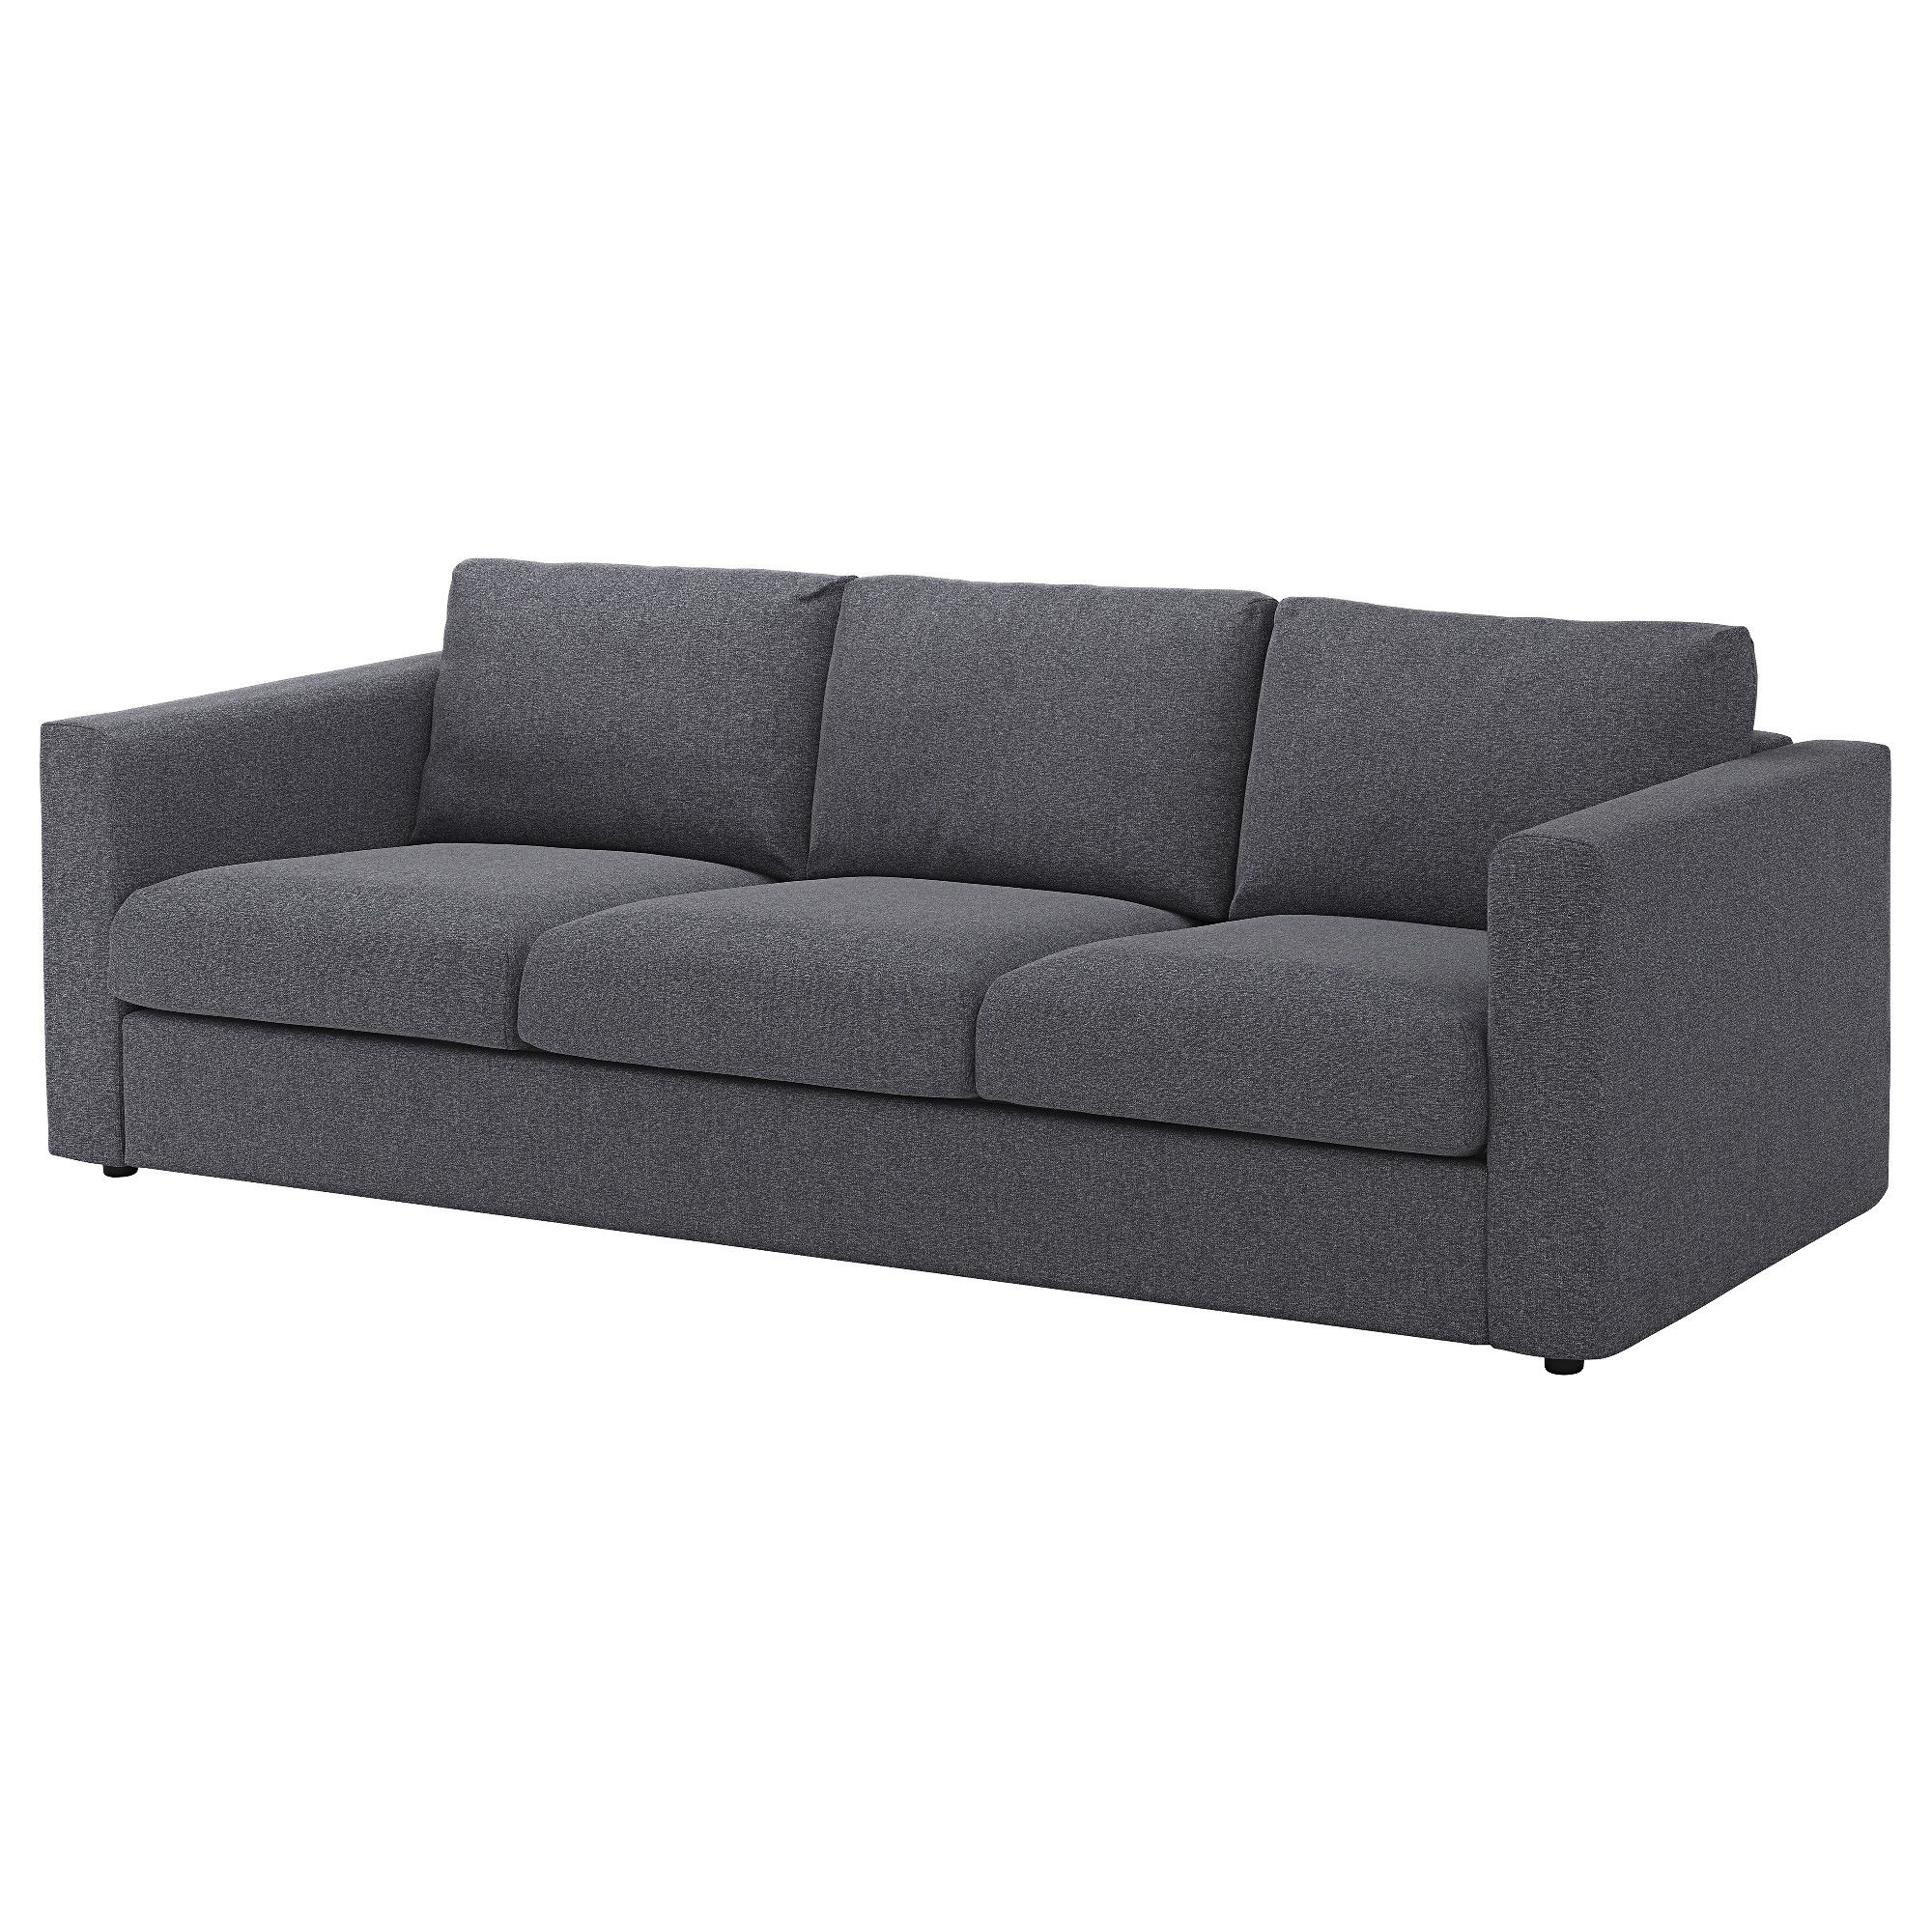 Ikea Vimle 3 Seat Sofa Gunnared Medium Grey This Soft And Cosy Sofa Will Have A Long Life As The Seat Cushions Are Filled With Ikea Sofa Ikea Vimle Fabric Sofa